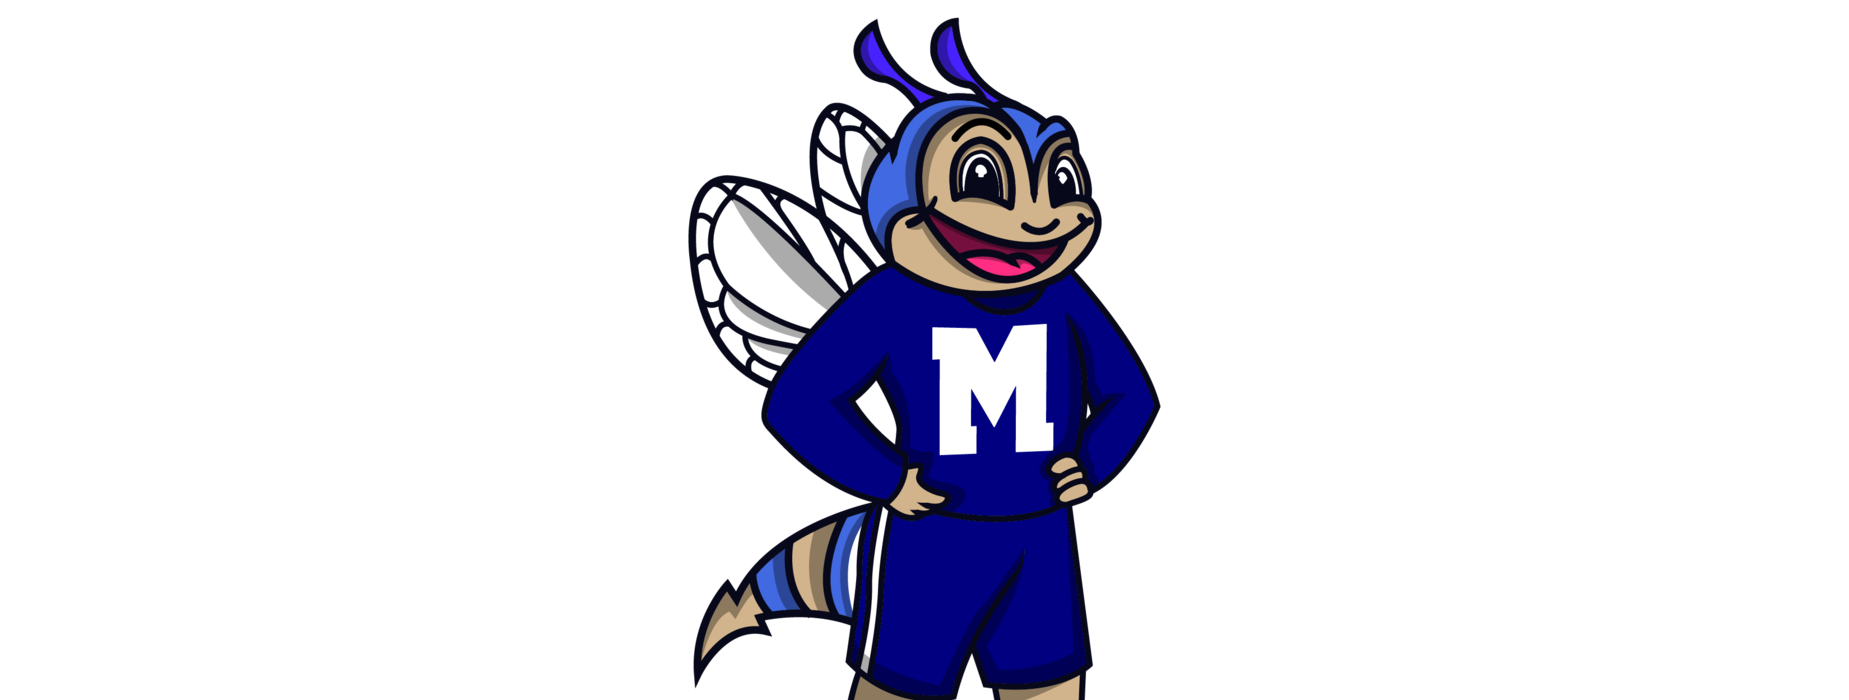 Howie, the mascot